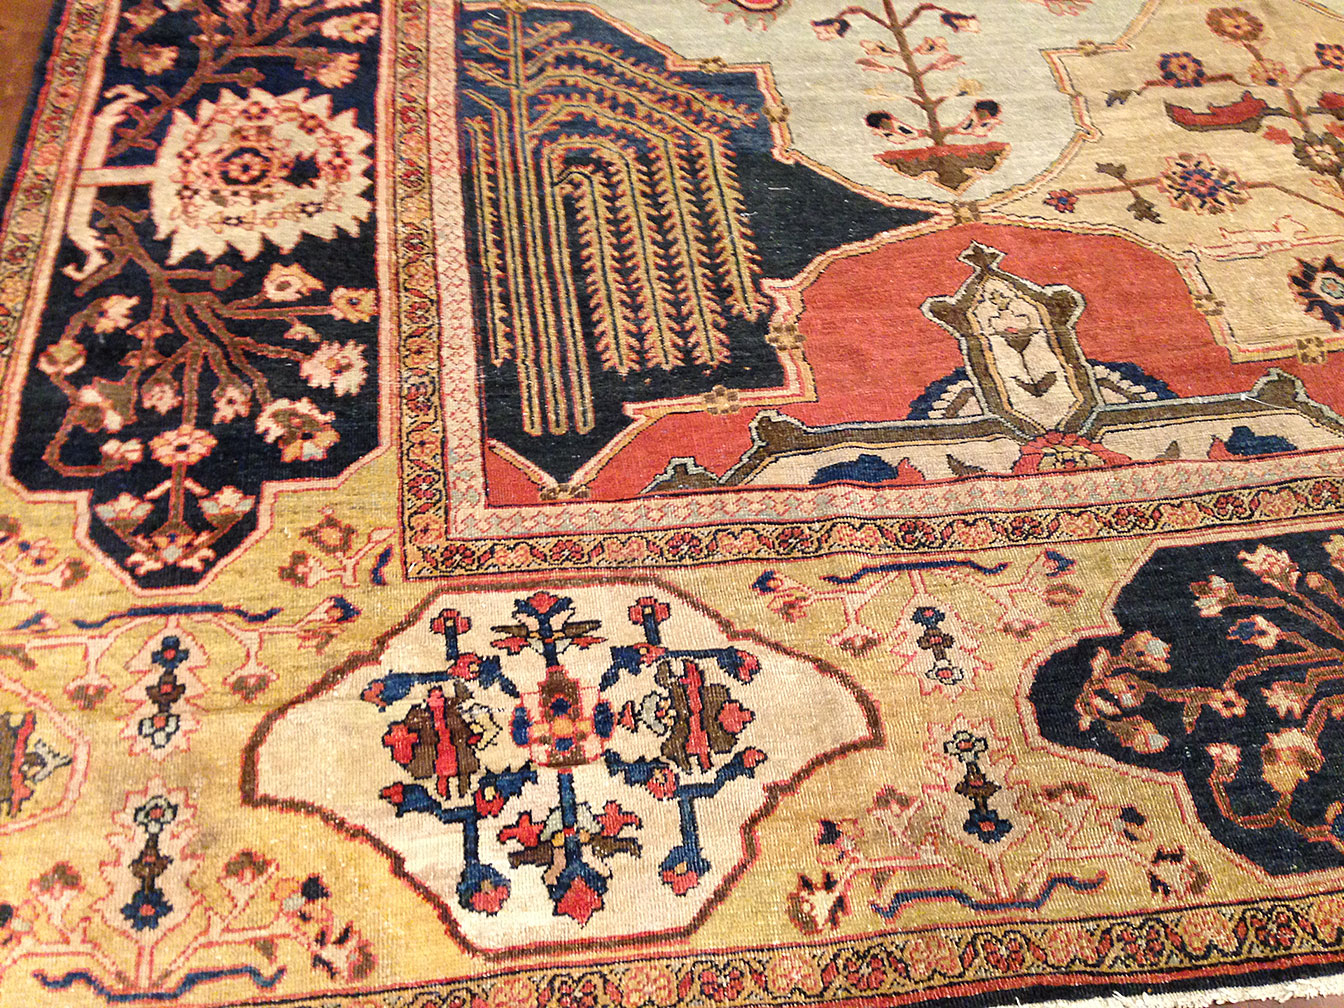 Antique sultan abad Carpet - # 9832